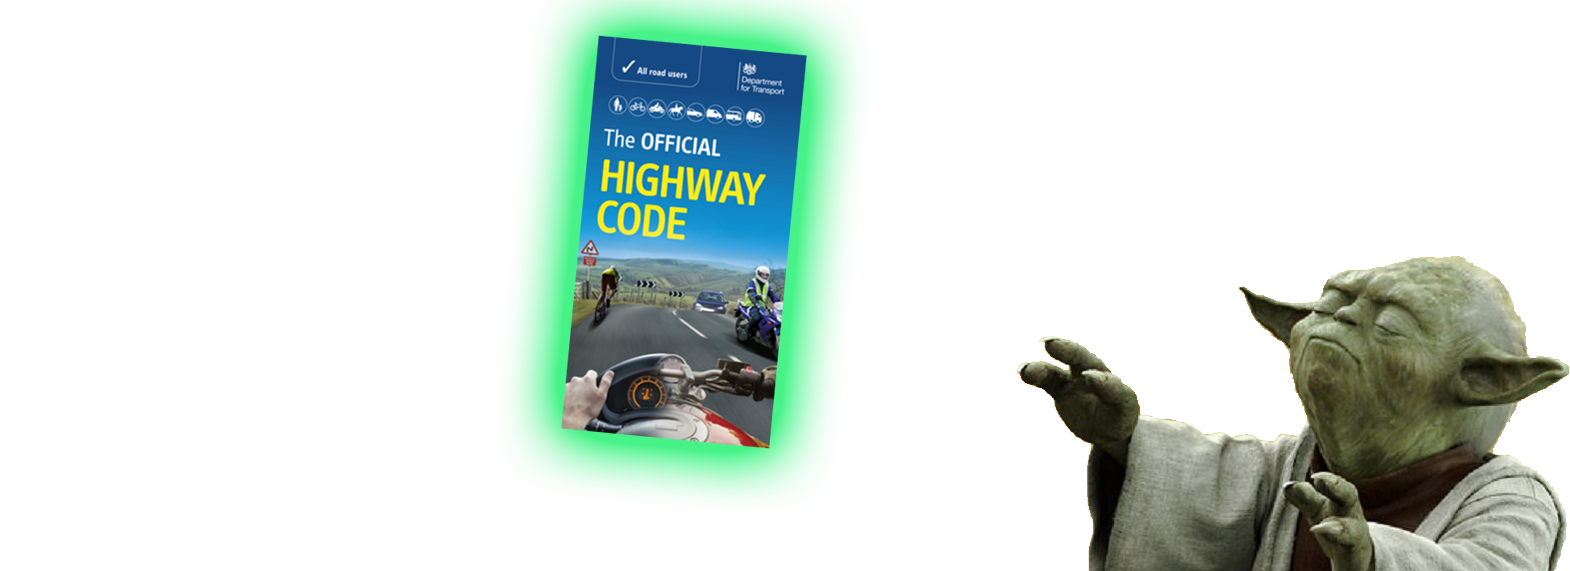 yoda with highway code